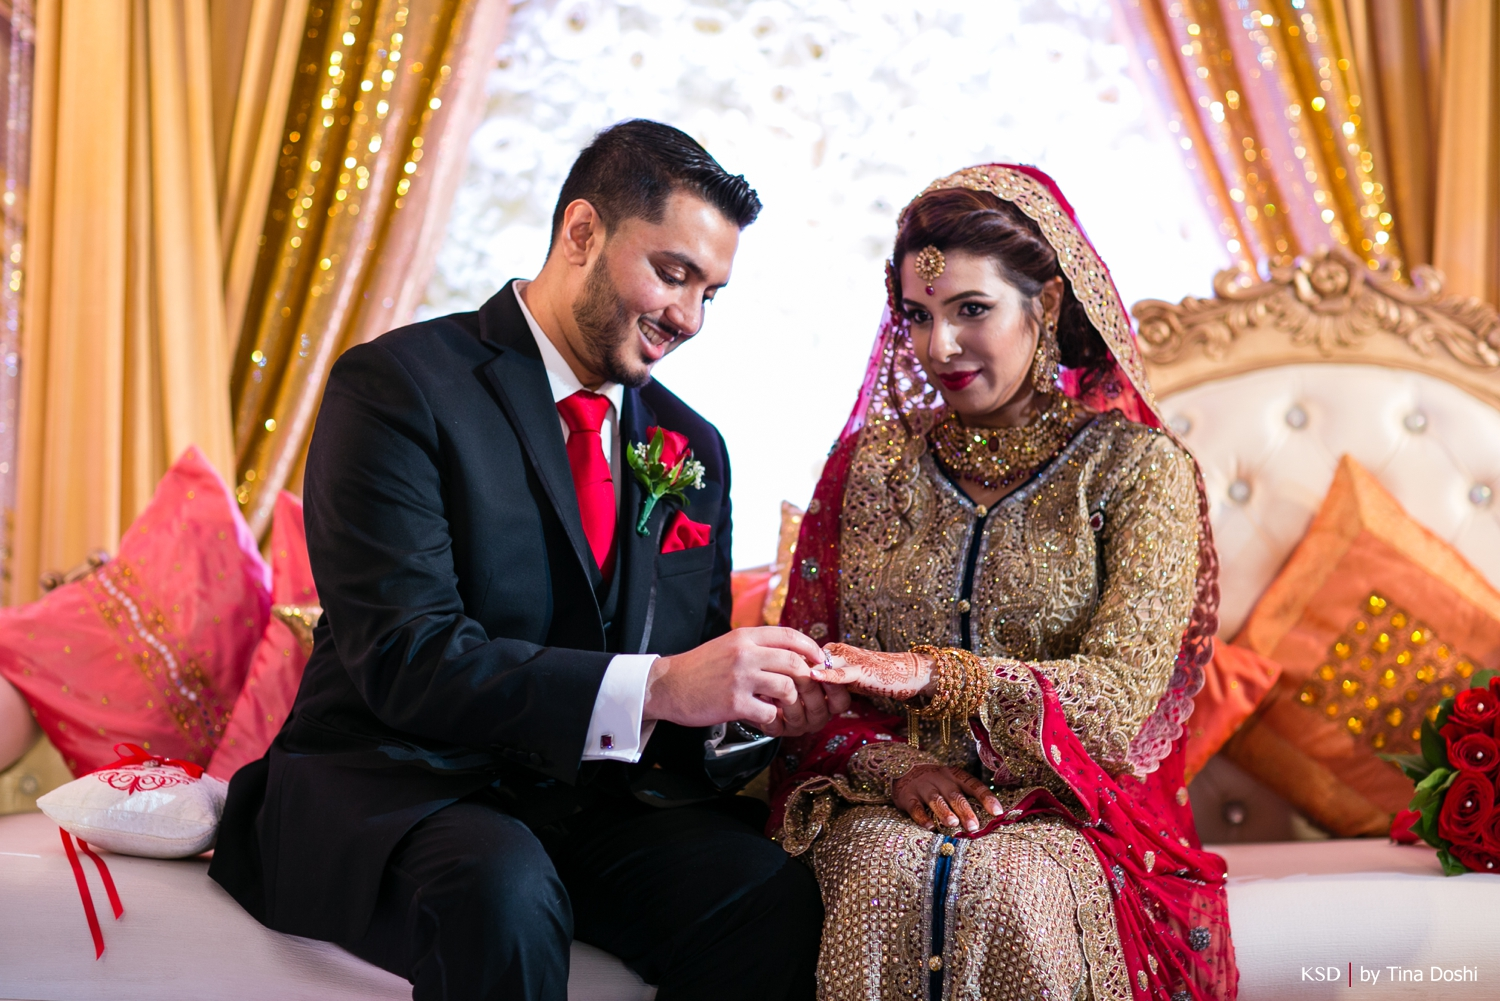 nj_south_asian_wedding_0110